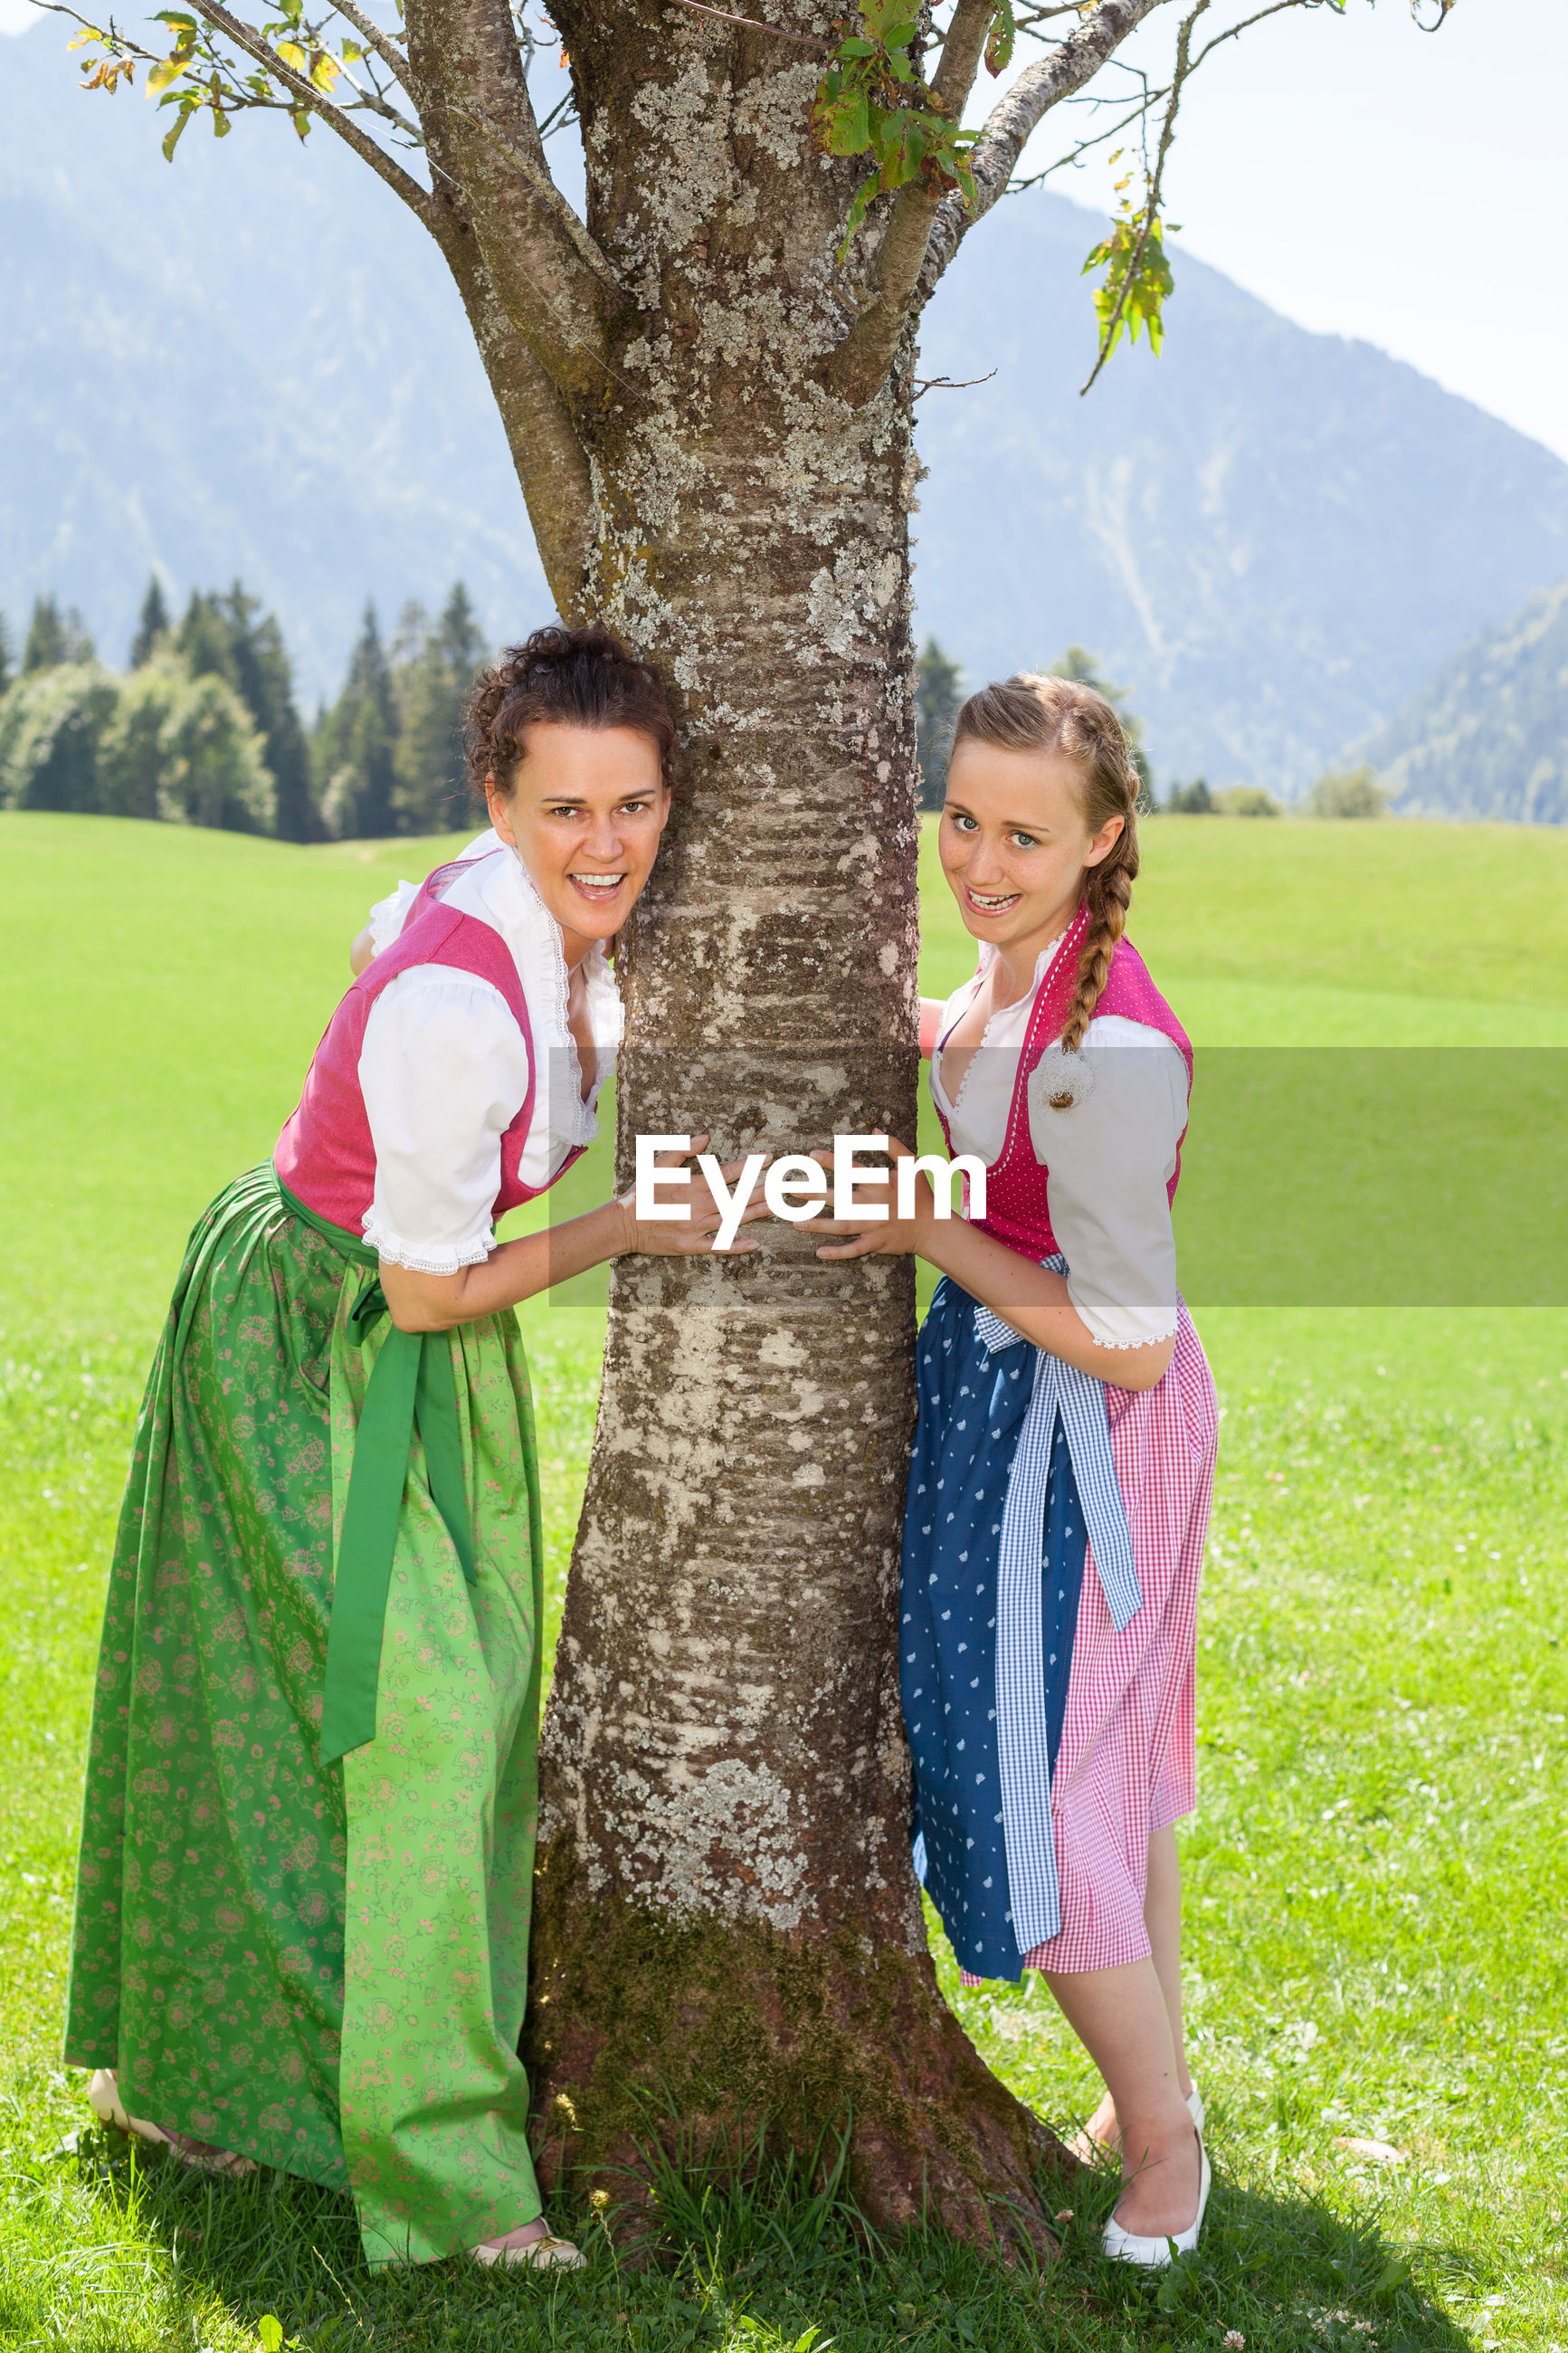 Women wearing traditional clothing while standing on grassy field